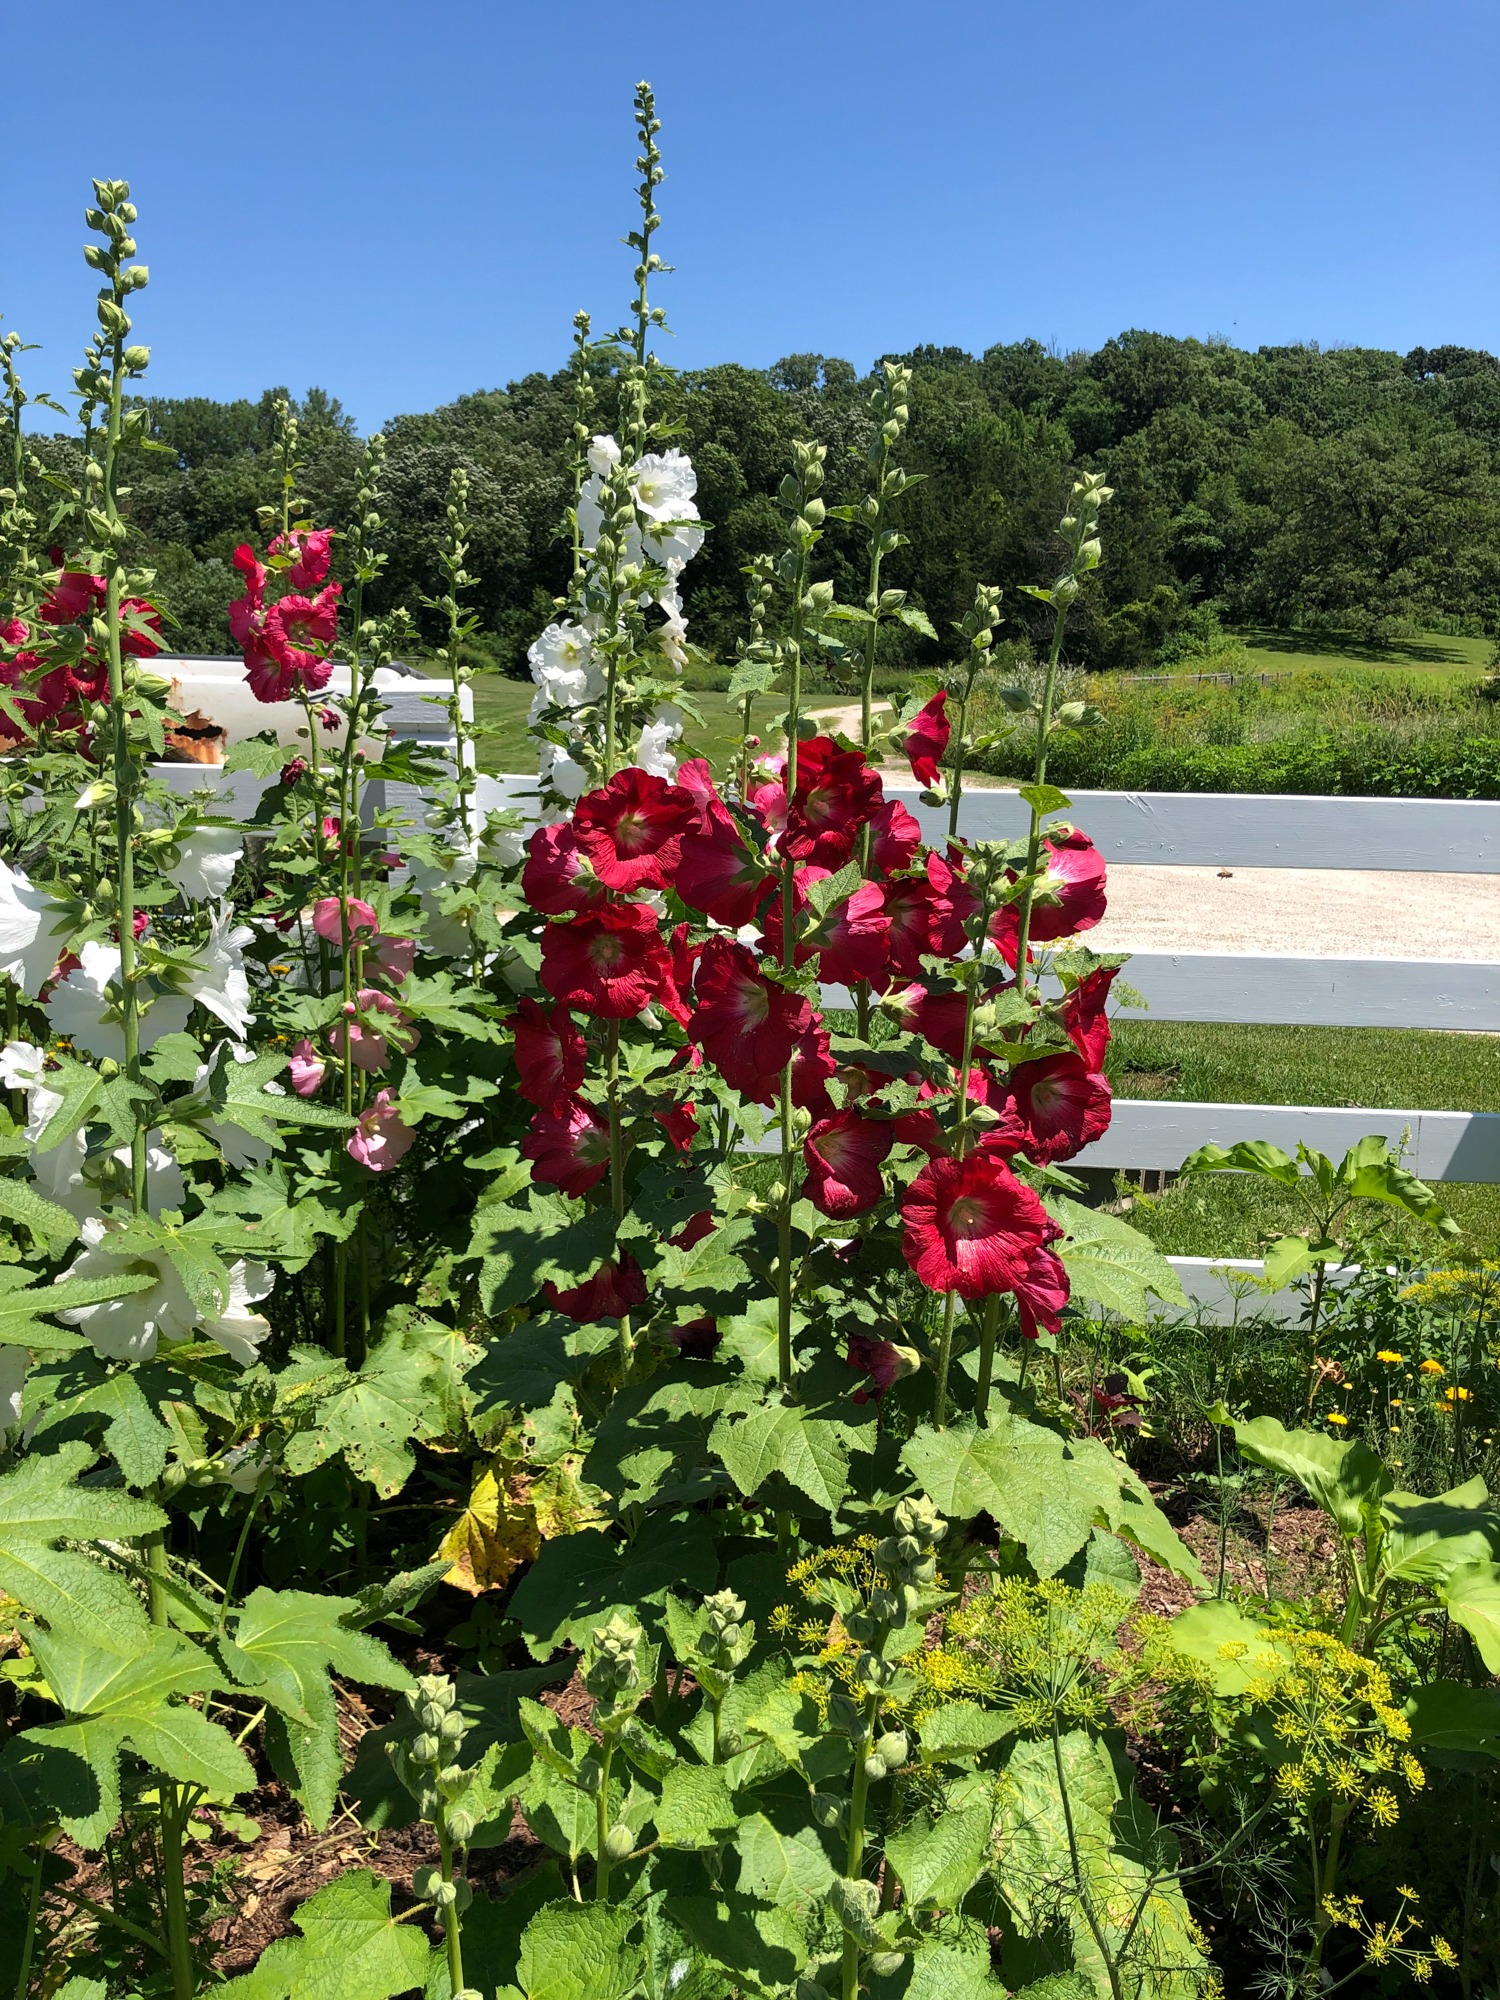 Hollyhocks and Dill at Seed Savers Exchange Heritage Farm in Decorah Iowa